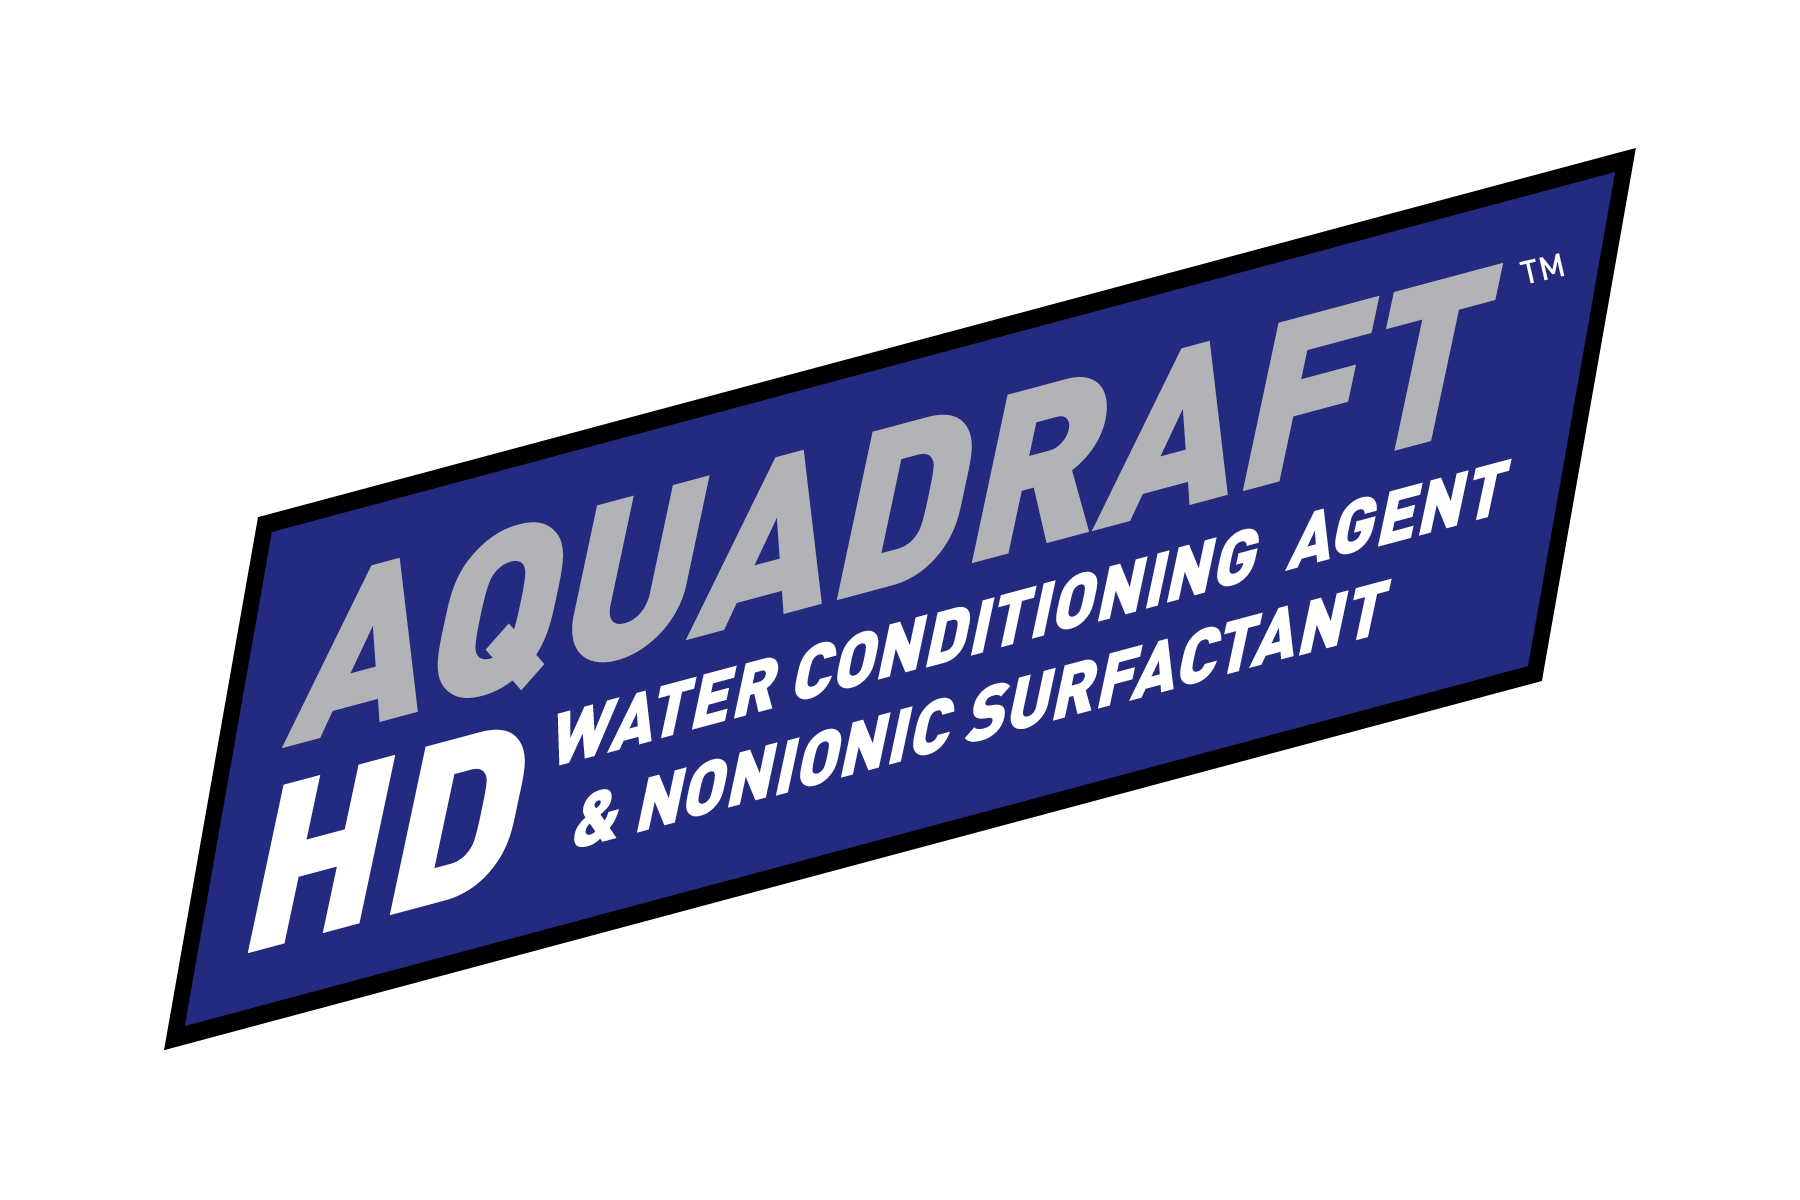 Aquadraft™ HD Water Conditioning Agent & Nonionic Surfactant